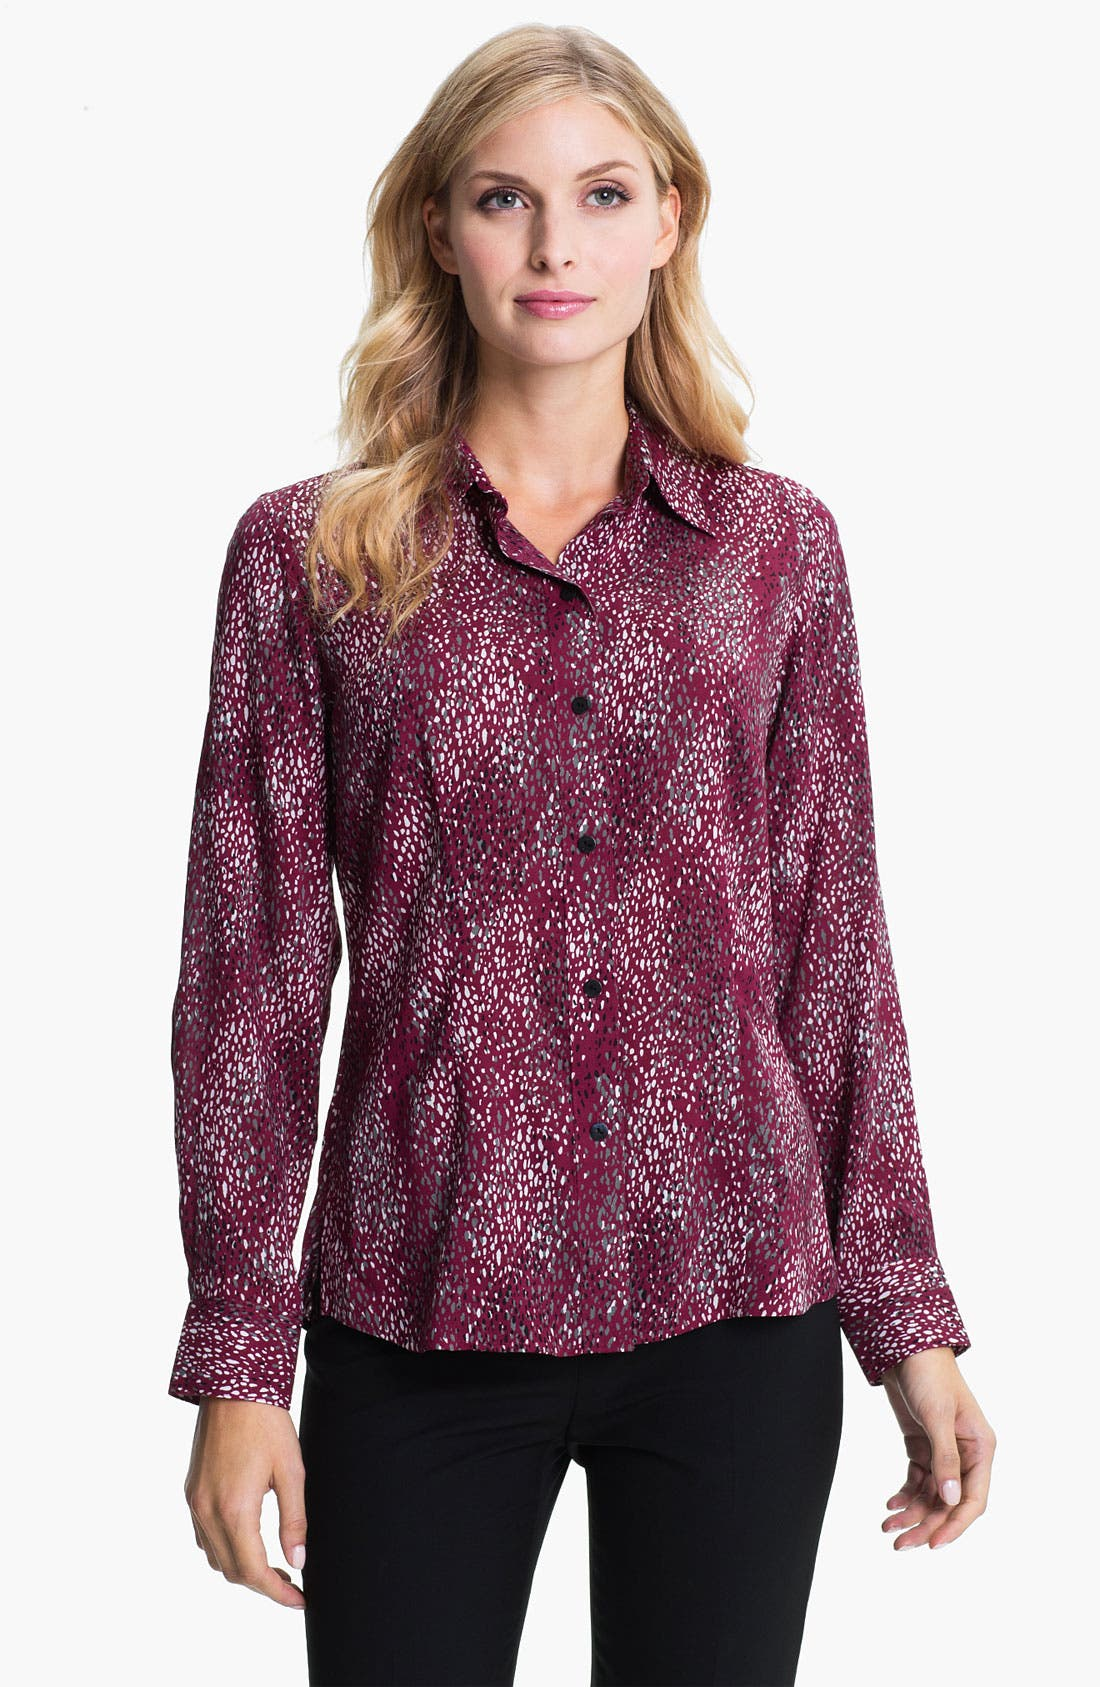 Alternate Image 1 Selected - Foxcroft 'Scattered Dots' Shirt